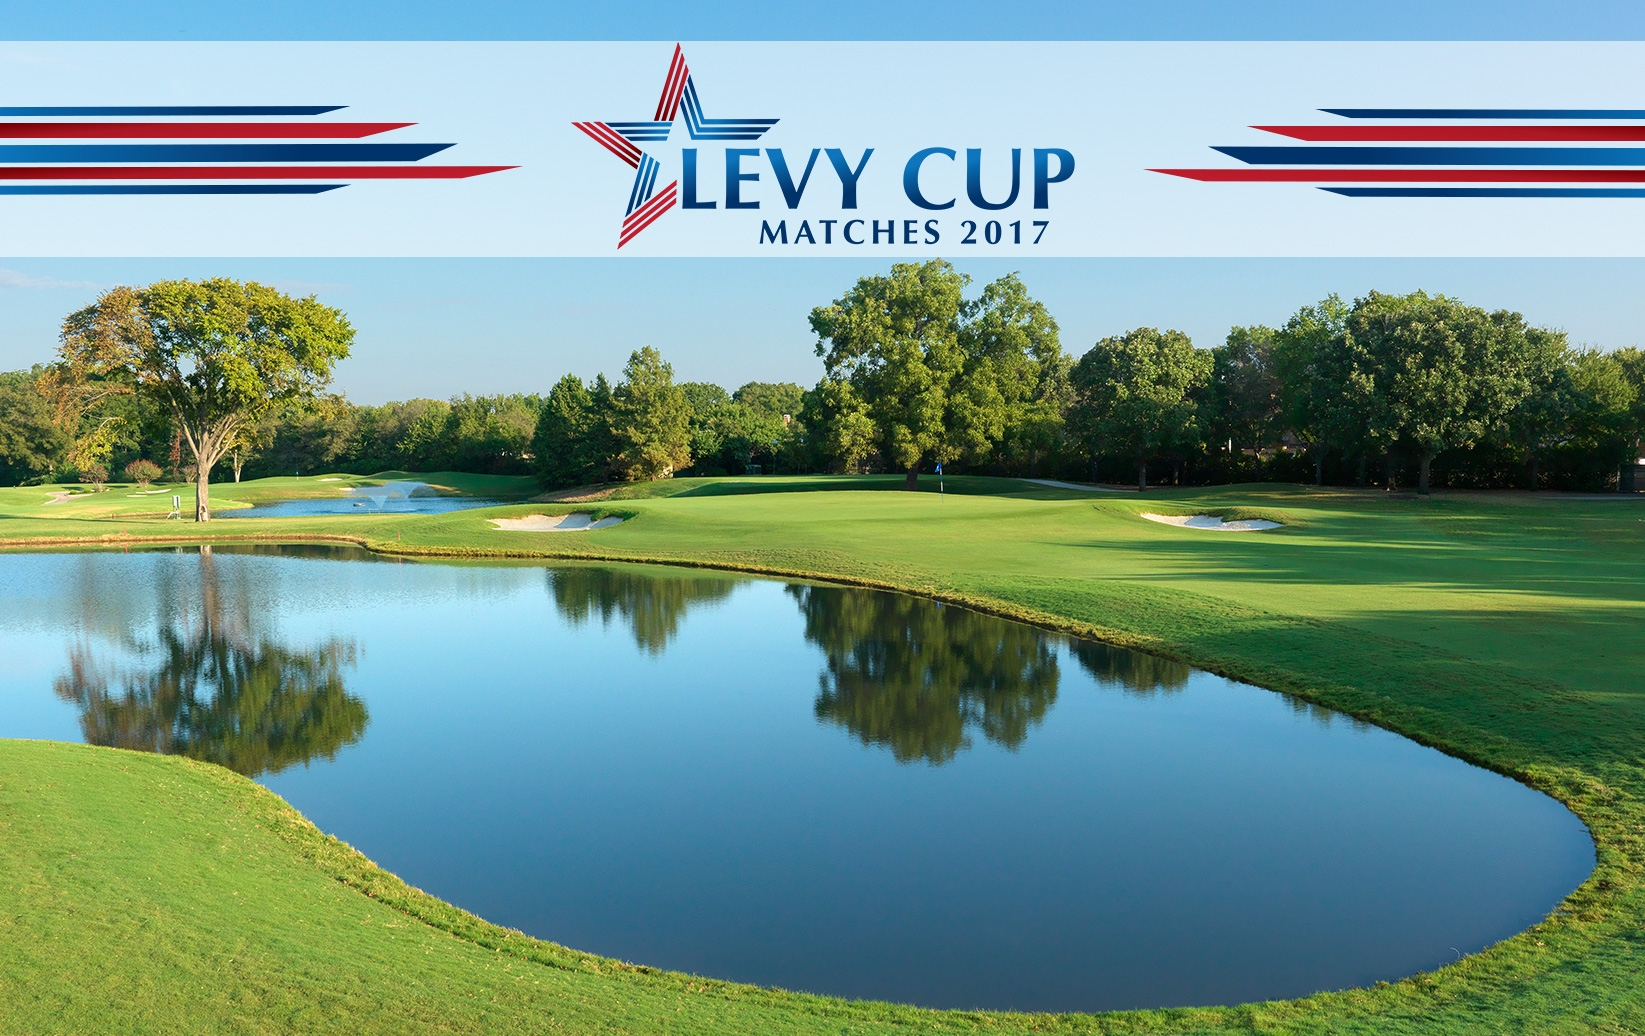 Southern Texas PGA Captures Inaugural Levy Cup Matches